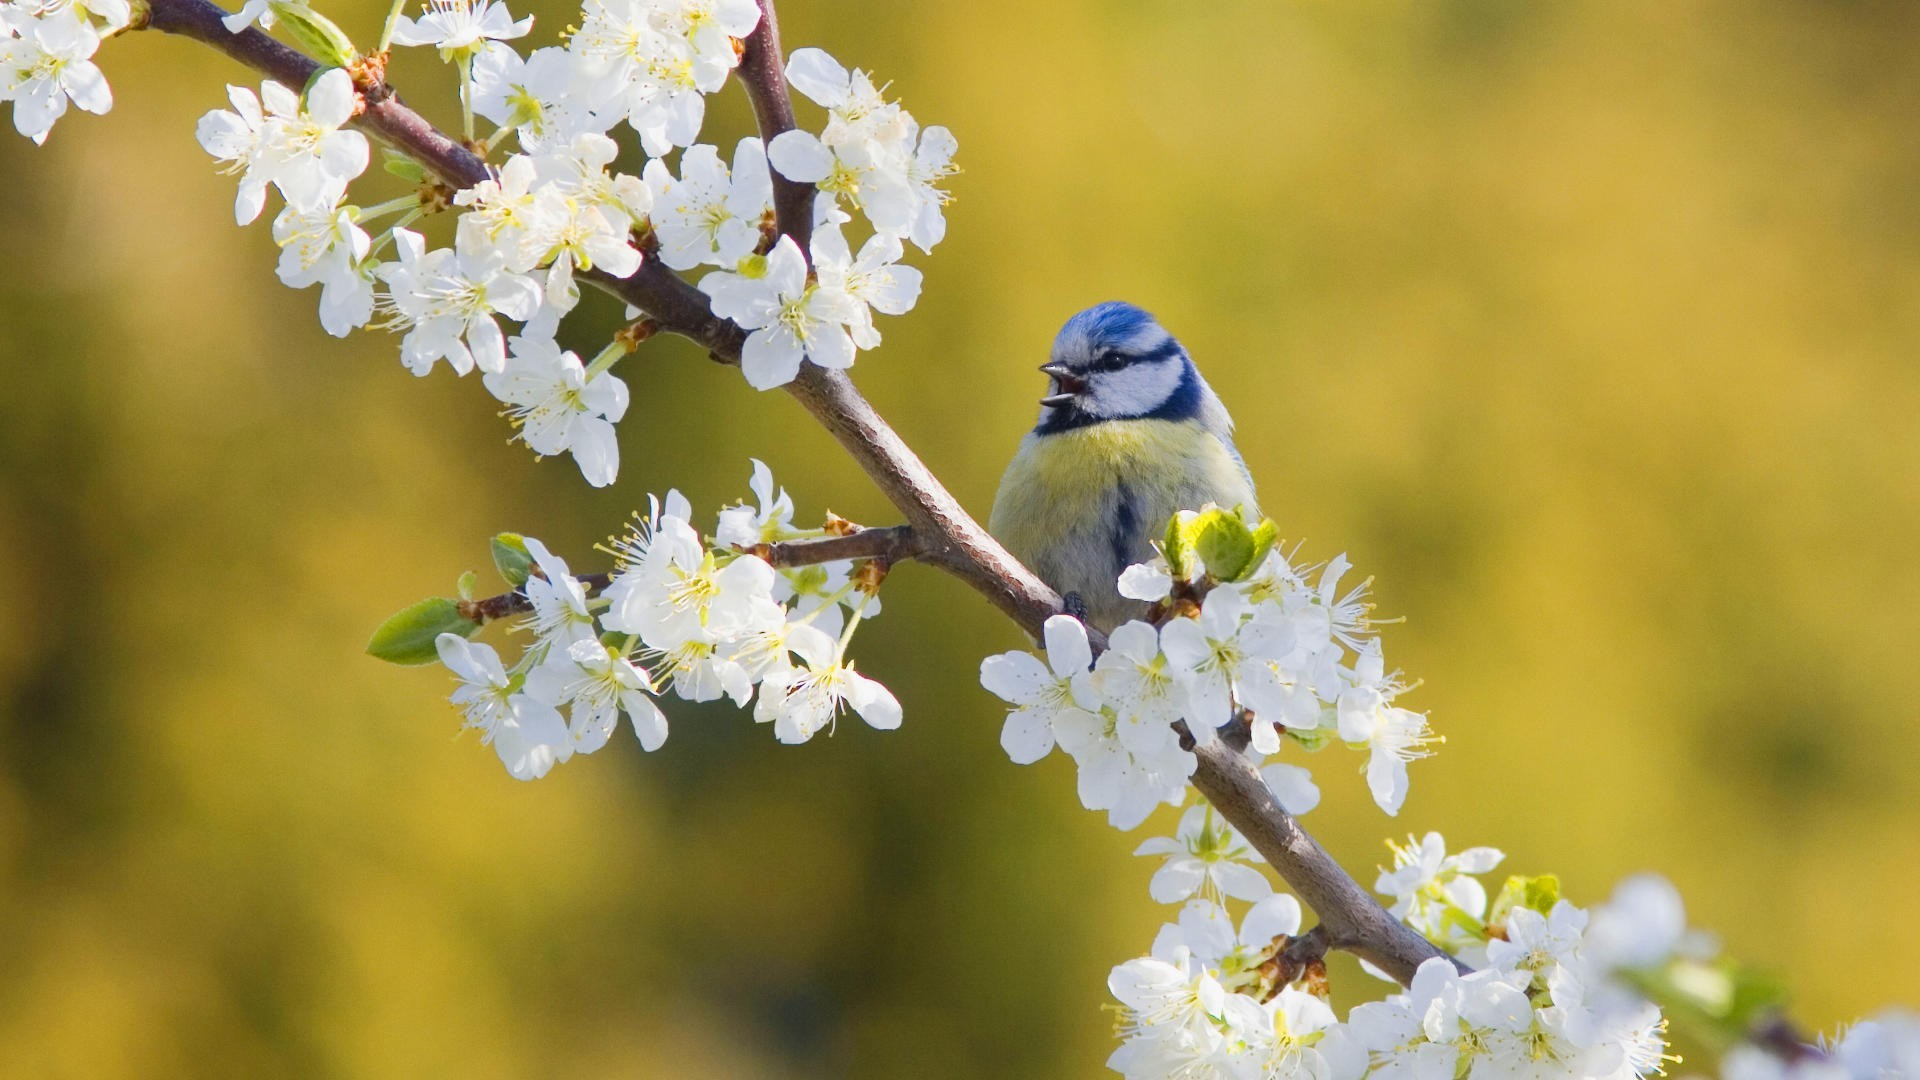 1920x1080 nature, birds, blue tit, white flowers, blurred background - Free Wallpaper  / WallpaperJam.com